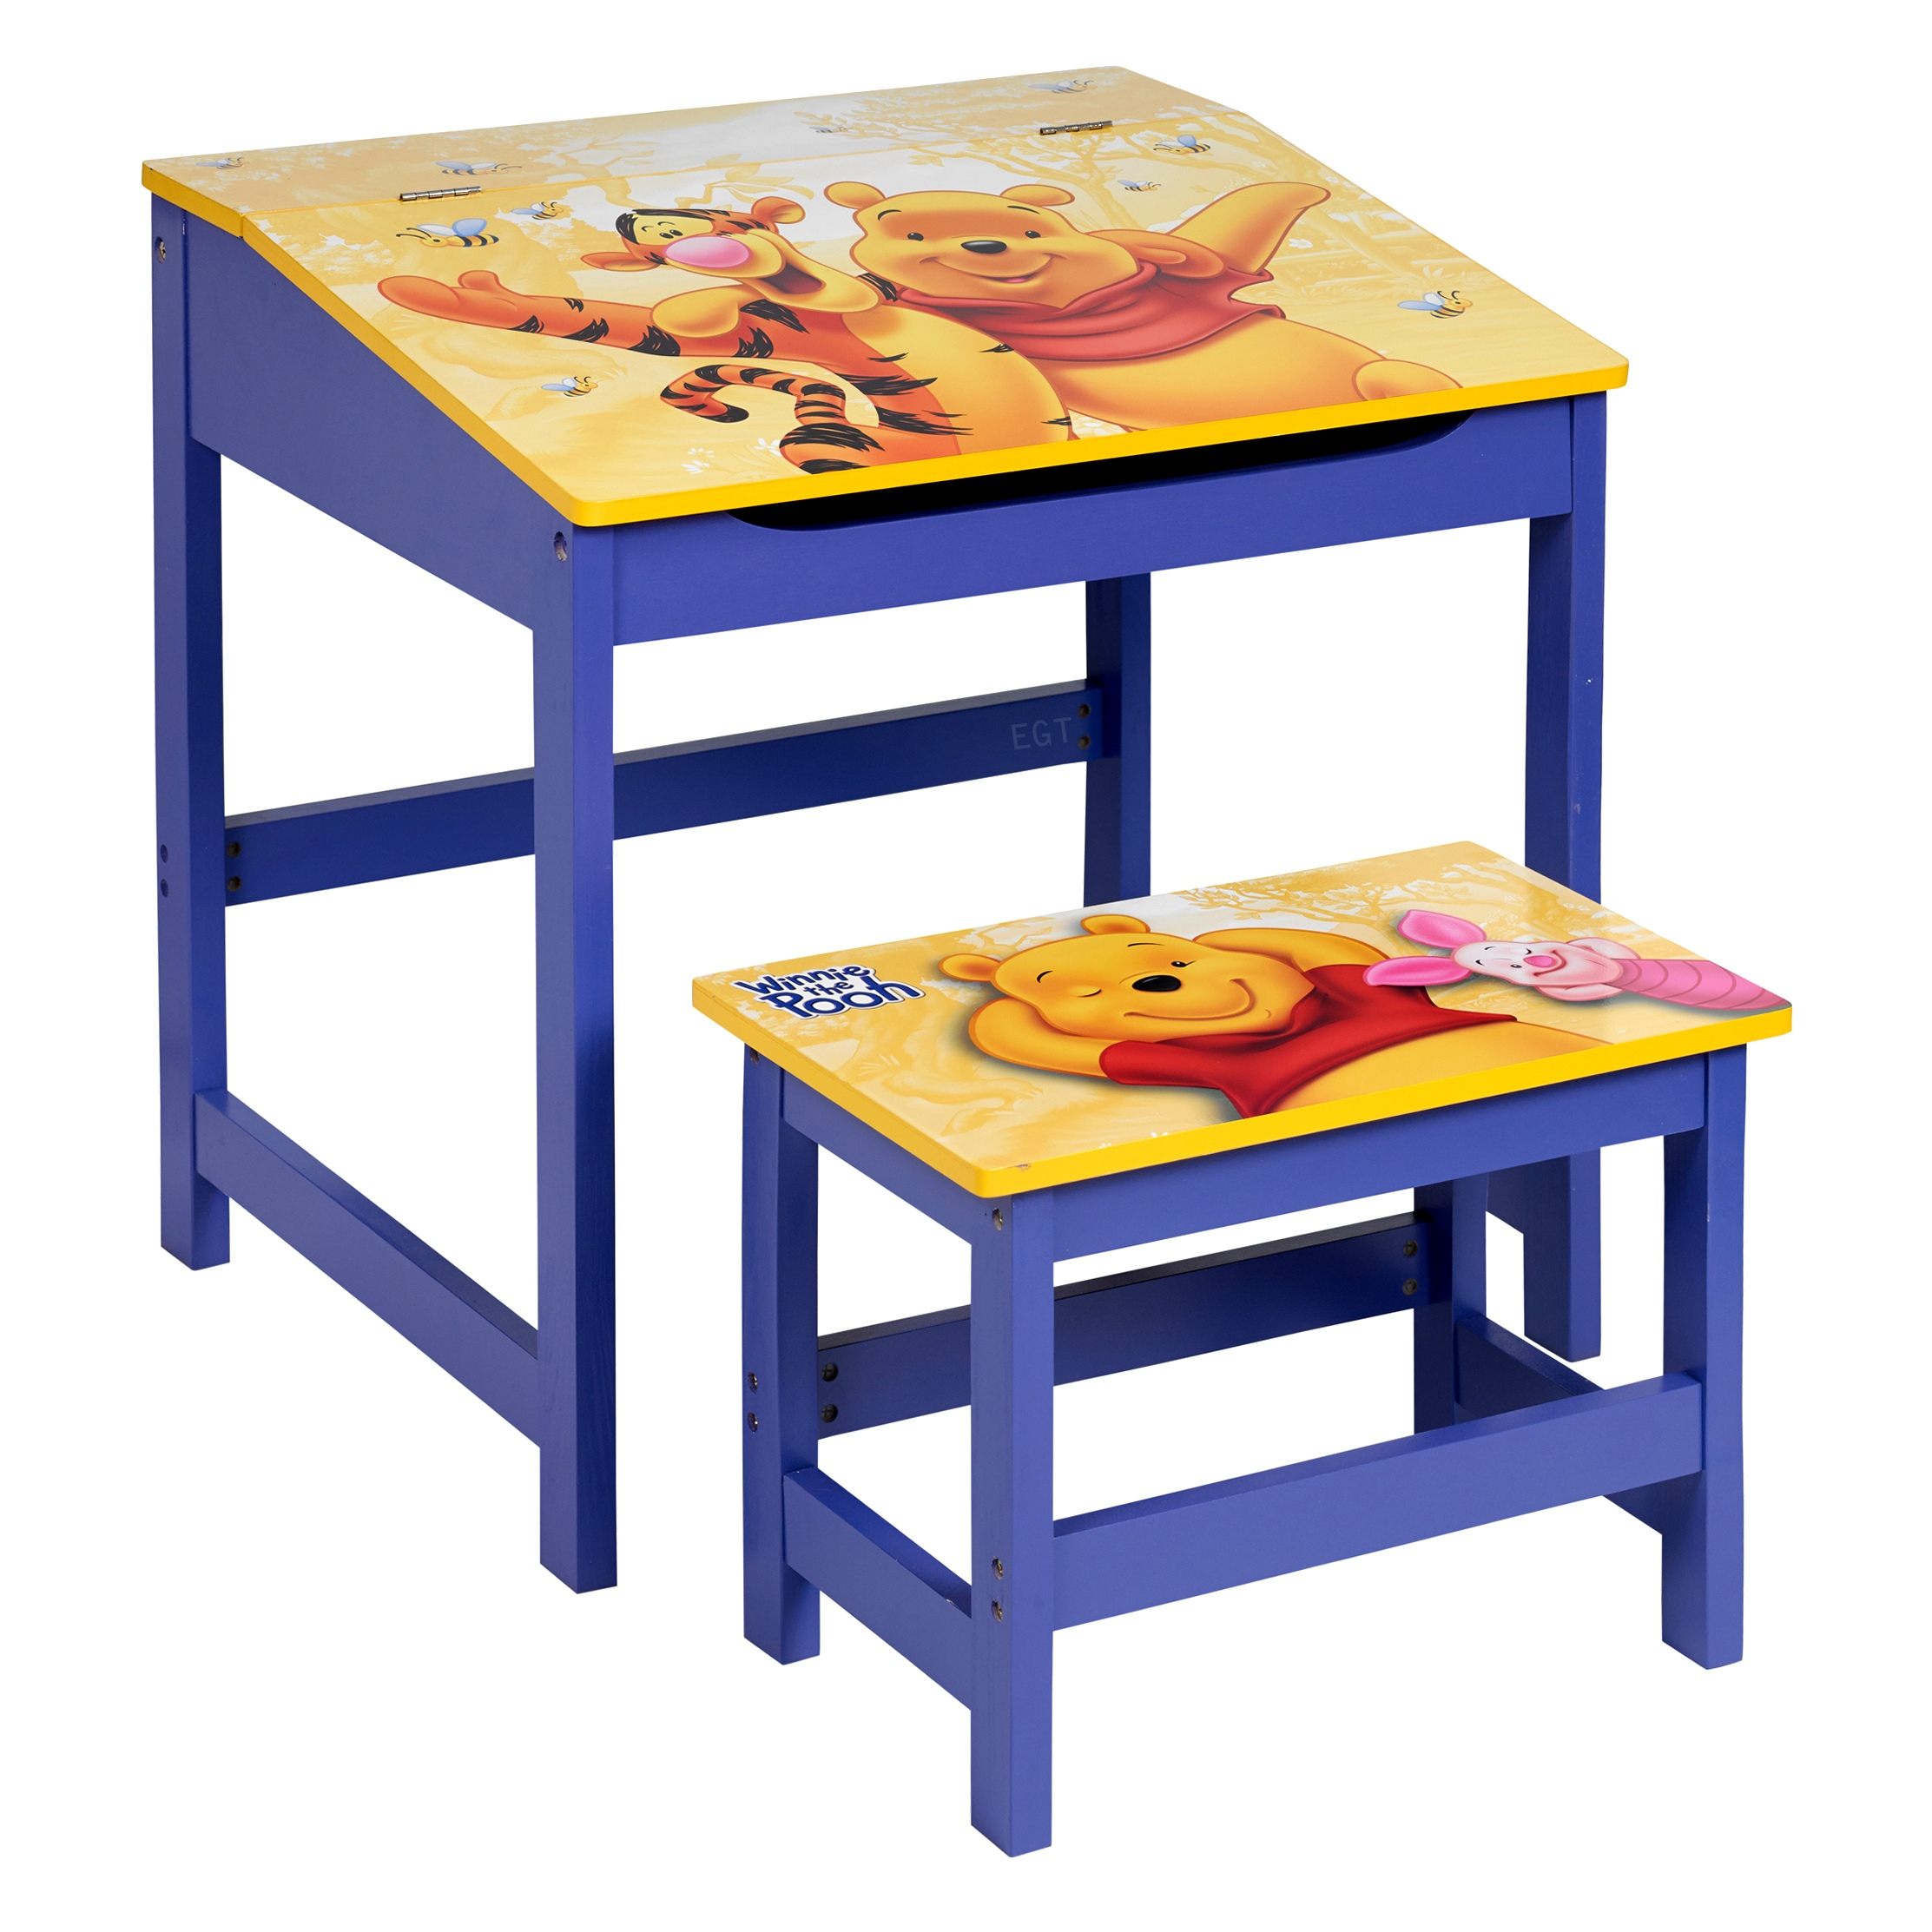 desk stool 28 images standing desk school stools  : winnie the pooh desk stool set 791139  from www.myelectronicdays.com size 2225 x 2225 jpeg 655kB